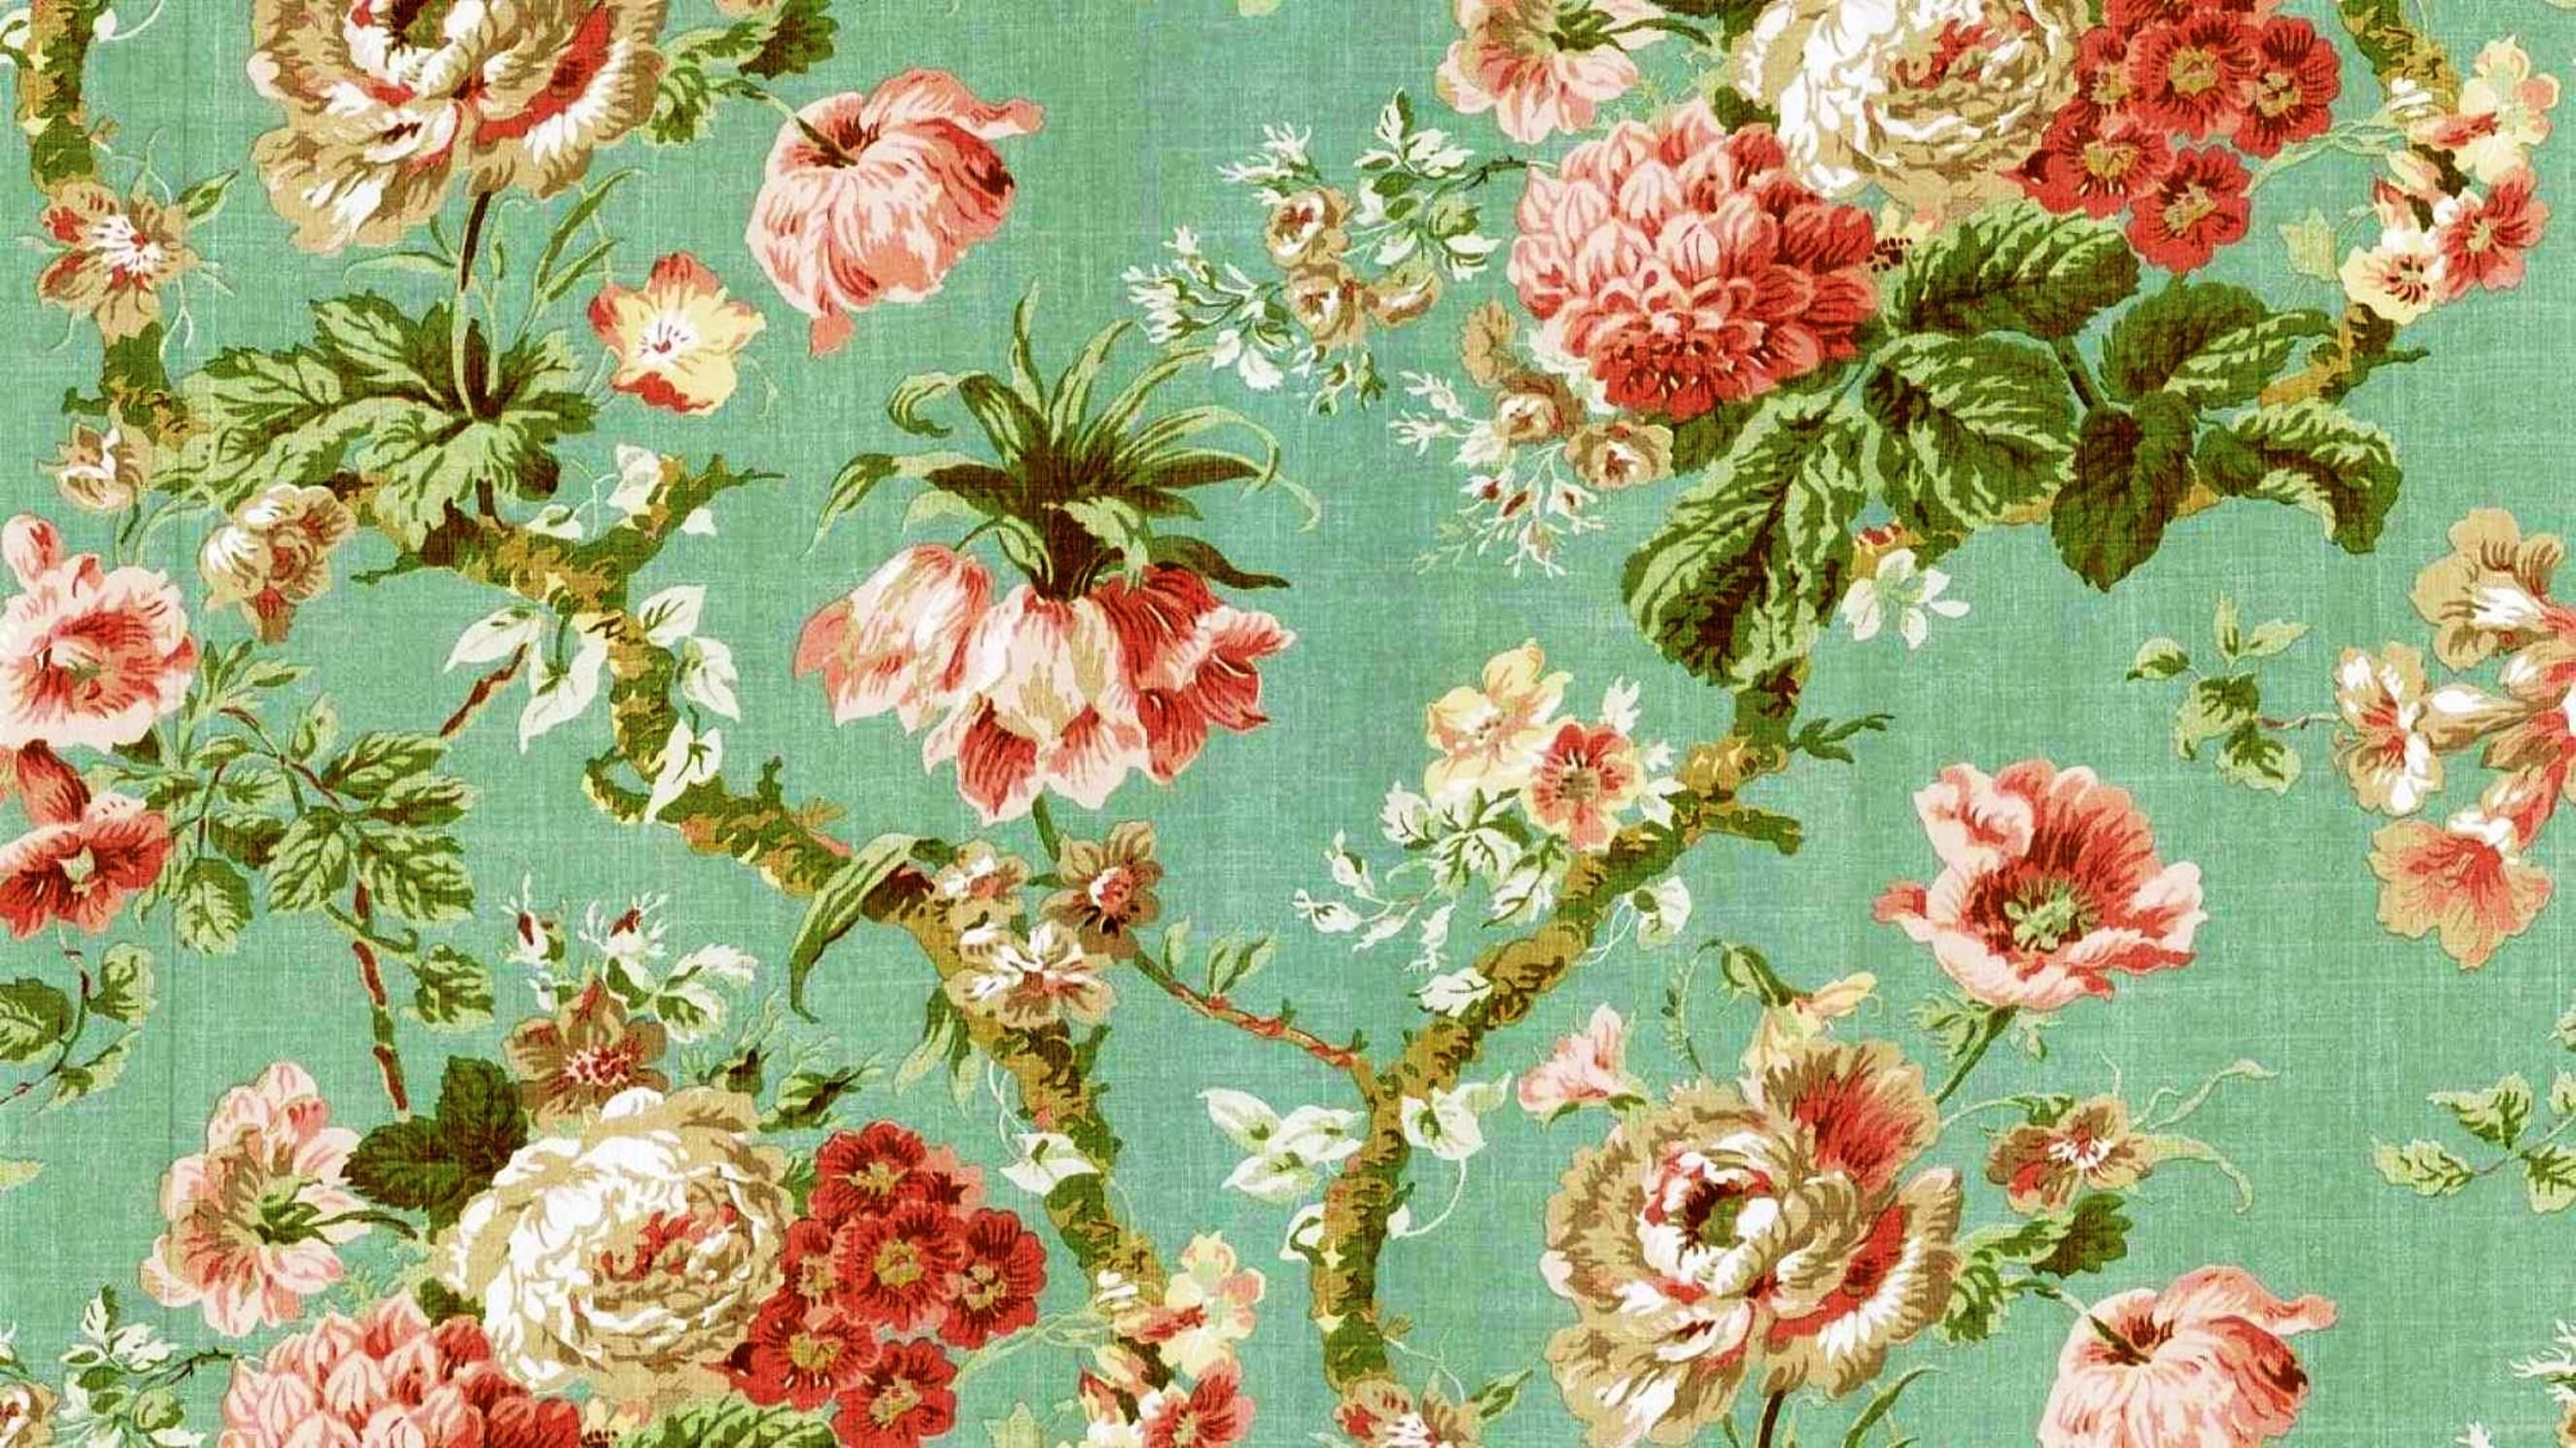 Vintage Floral Desktop Wallpapers Top Free Vintage Floral